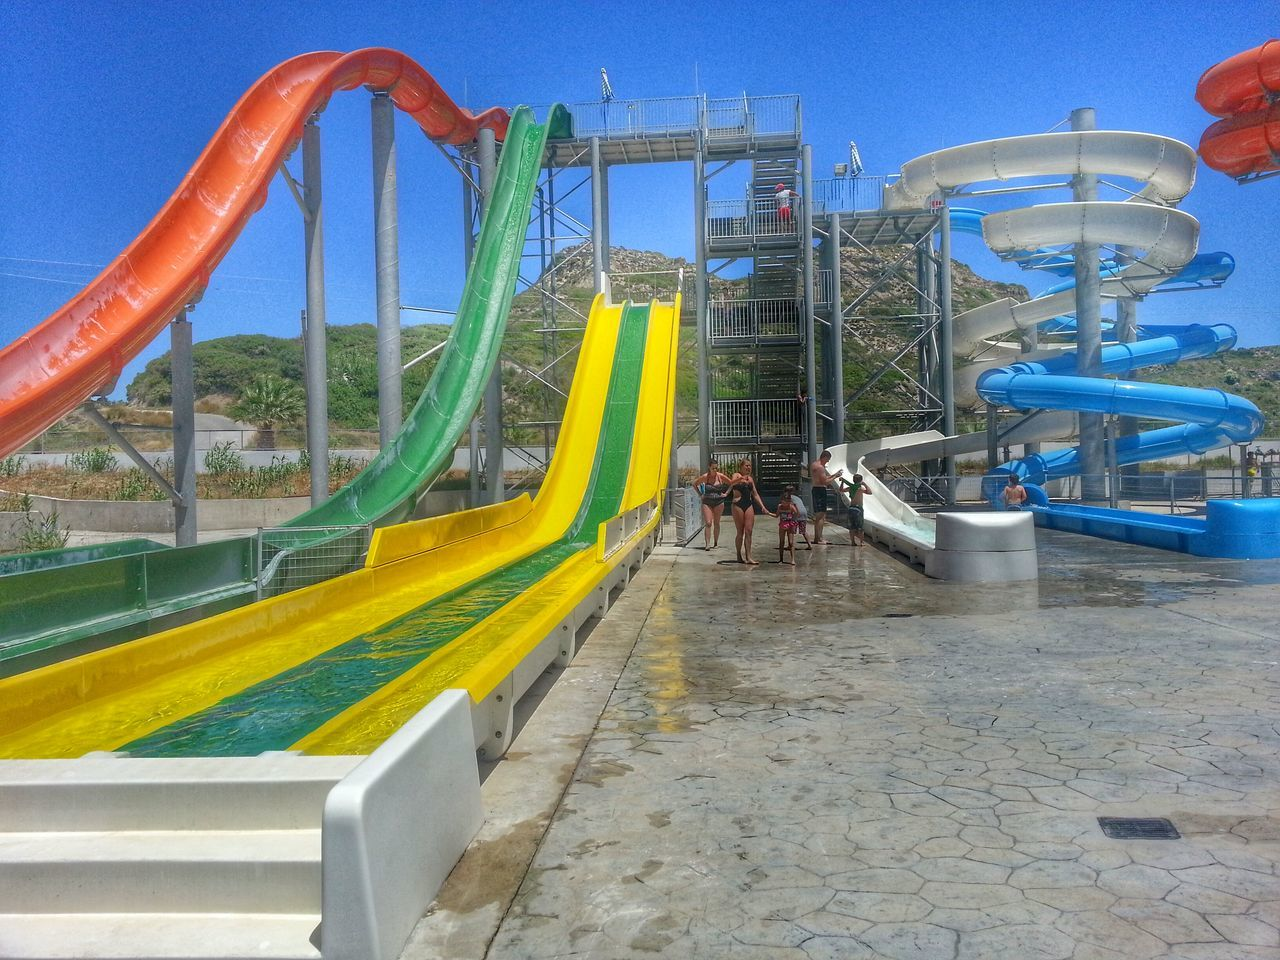 day, built structure, real people, leisure activity, architecture, clear sky, outdoors, sky, nature, water slide